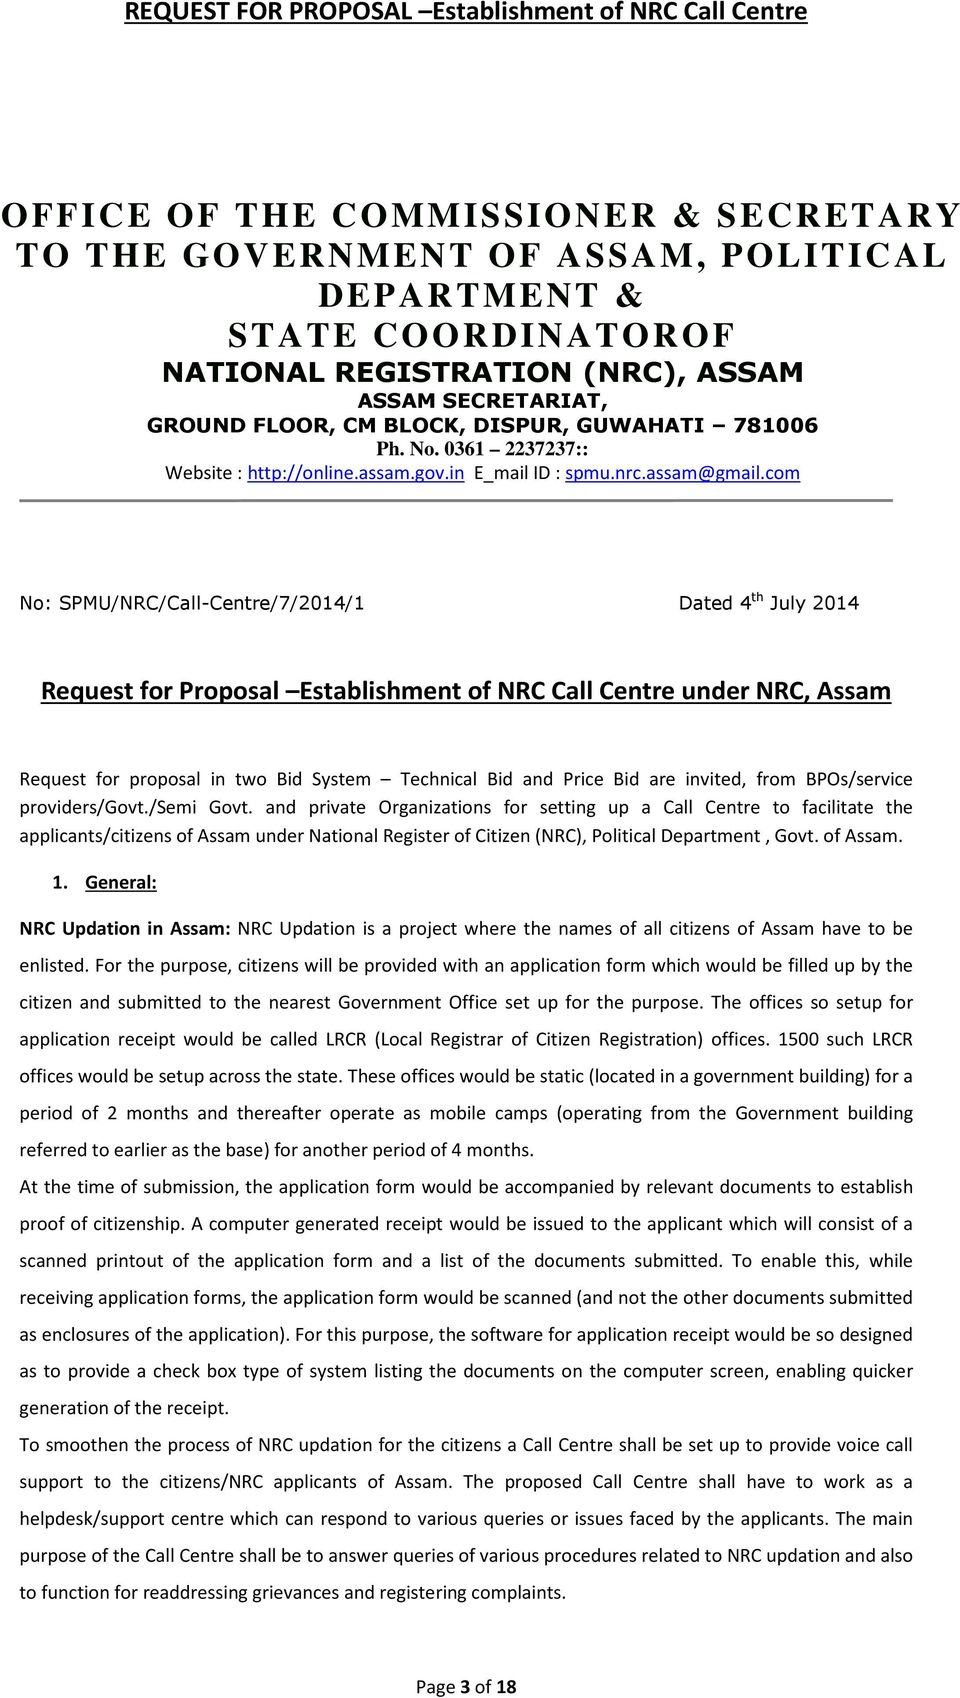 REQUEST FOR PROPOSAL ESTABLISHMENT OF NRC CALL CENTRE UNDER